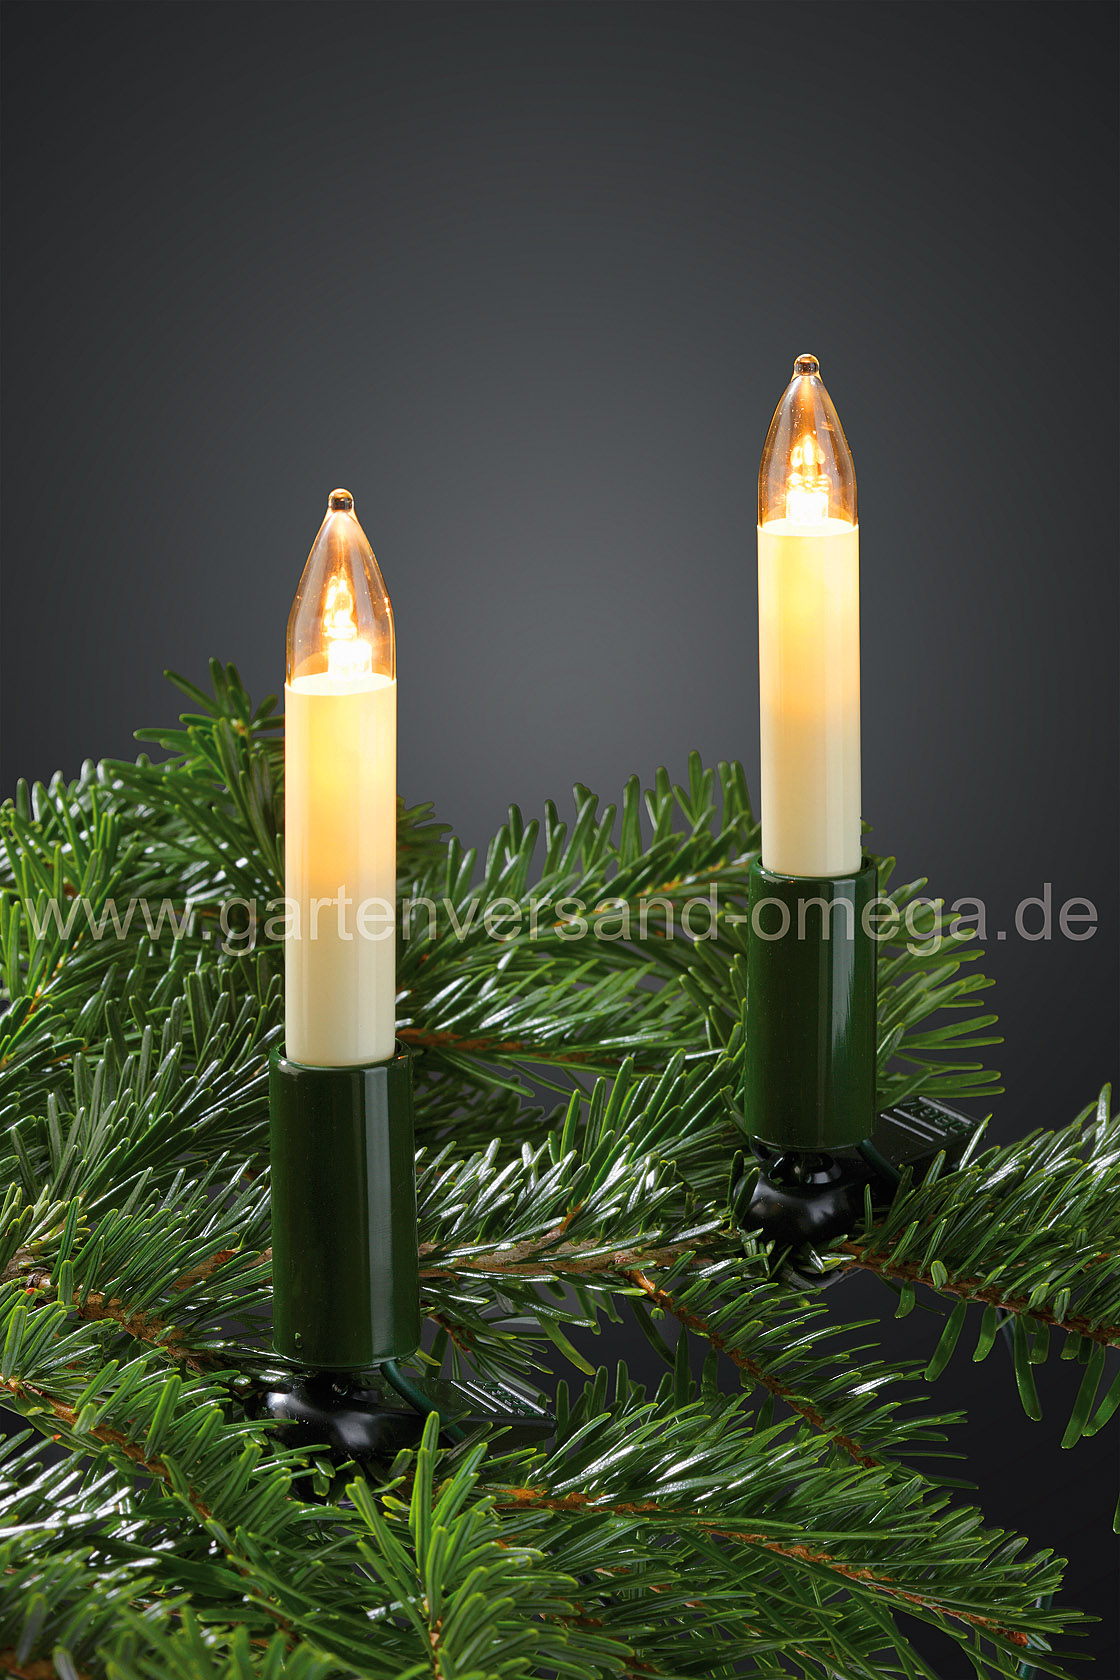 hochwertige led lichterkette christbaumlichterkette hochwertige weihnachtsbeleuchtung. Black Bedroom Furniture Sets. Home Design Ideas